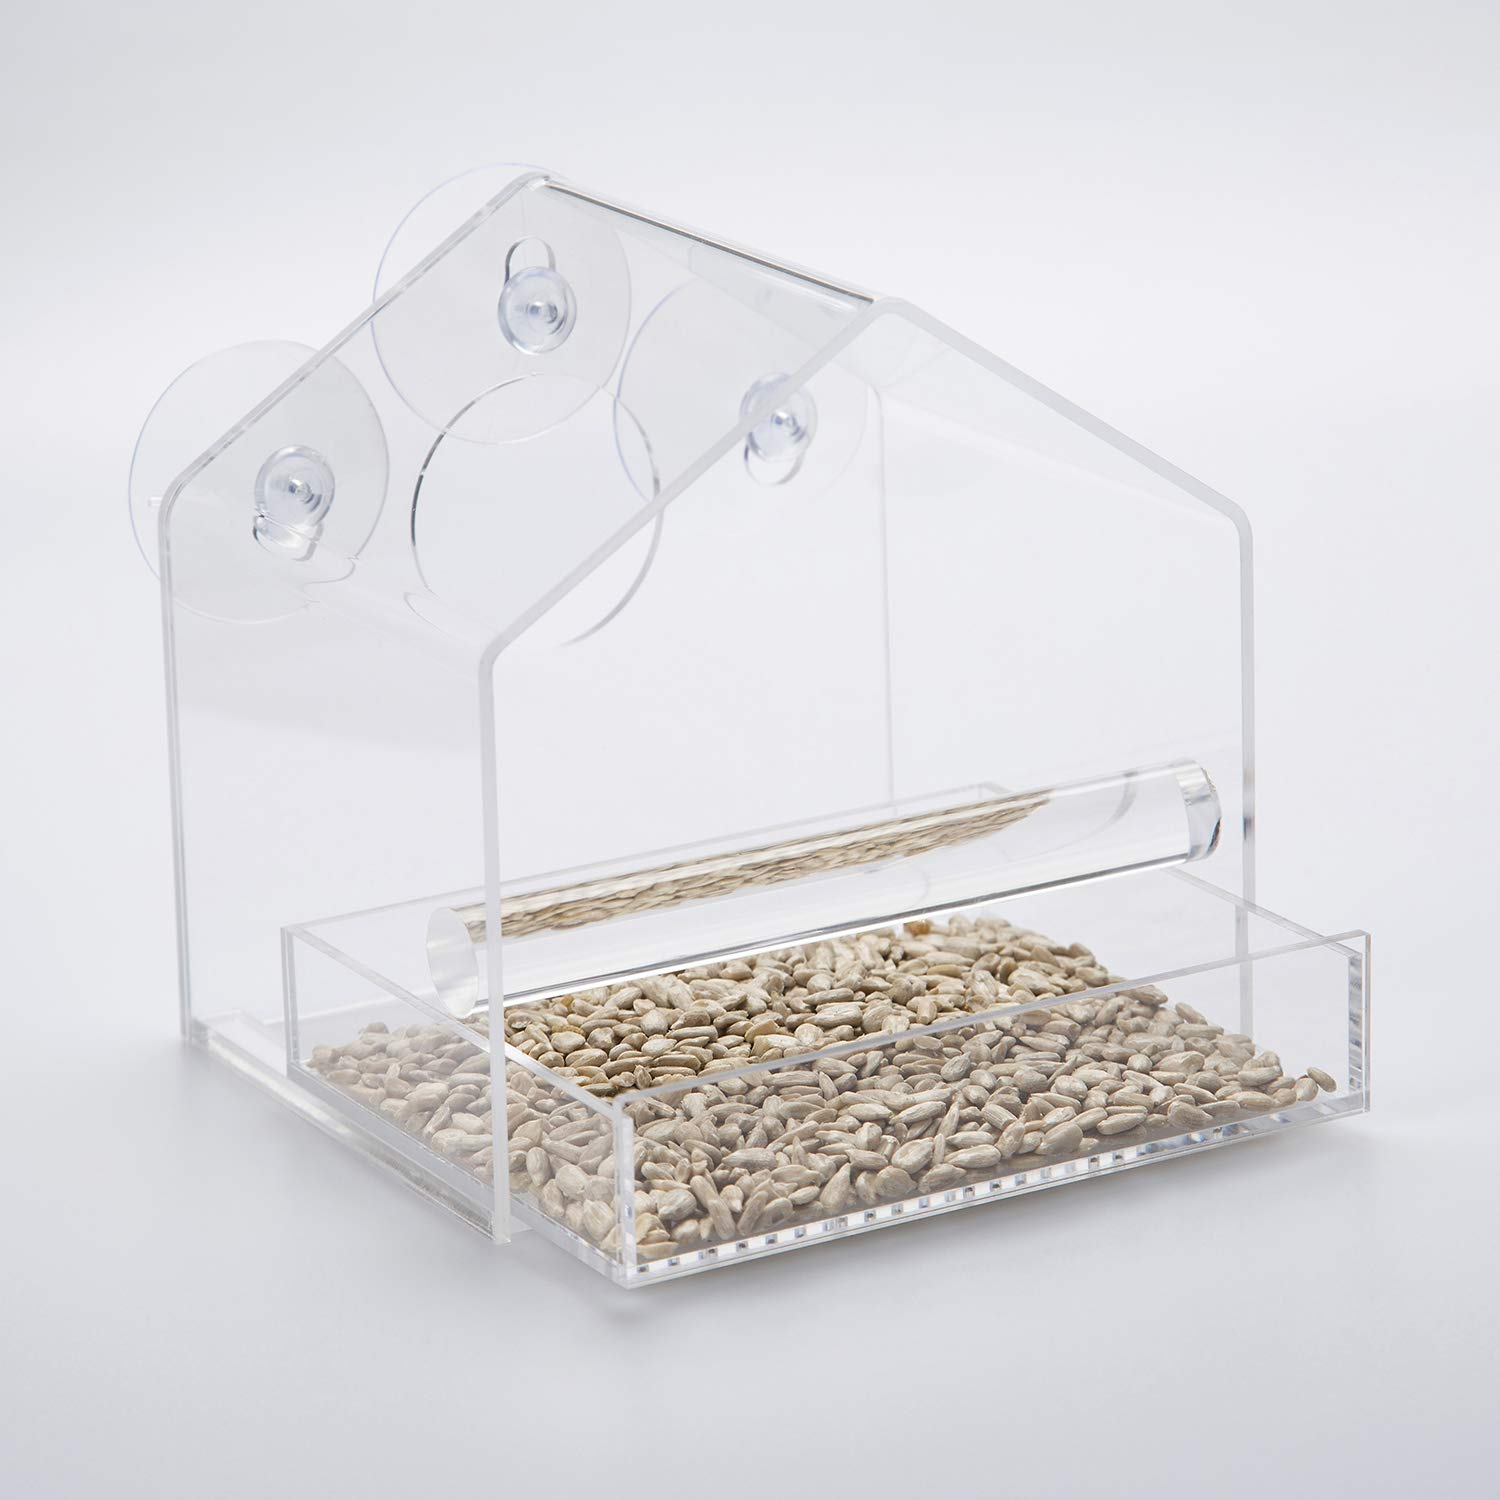 UPGRADED Window feeder in Glossy BOX, Great Gift, Keeps bird seed dry & Stays up in winter storms Chrysalis Products